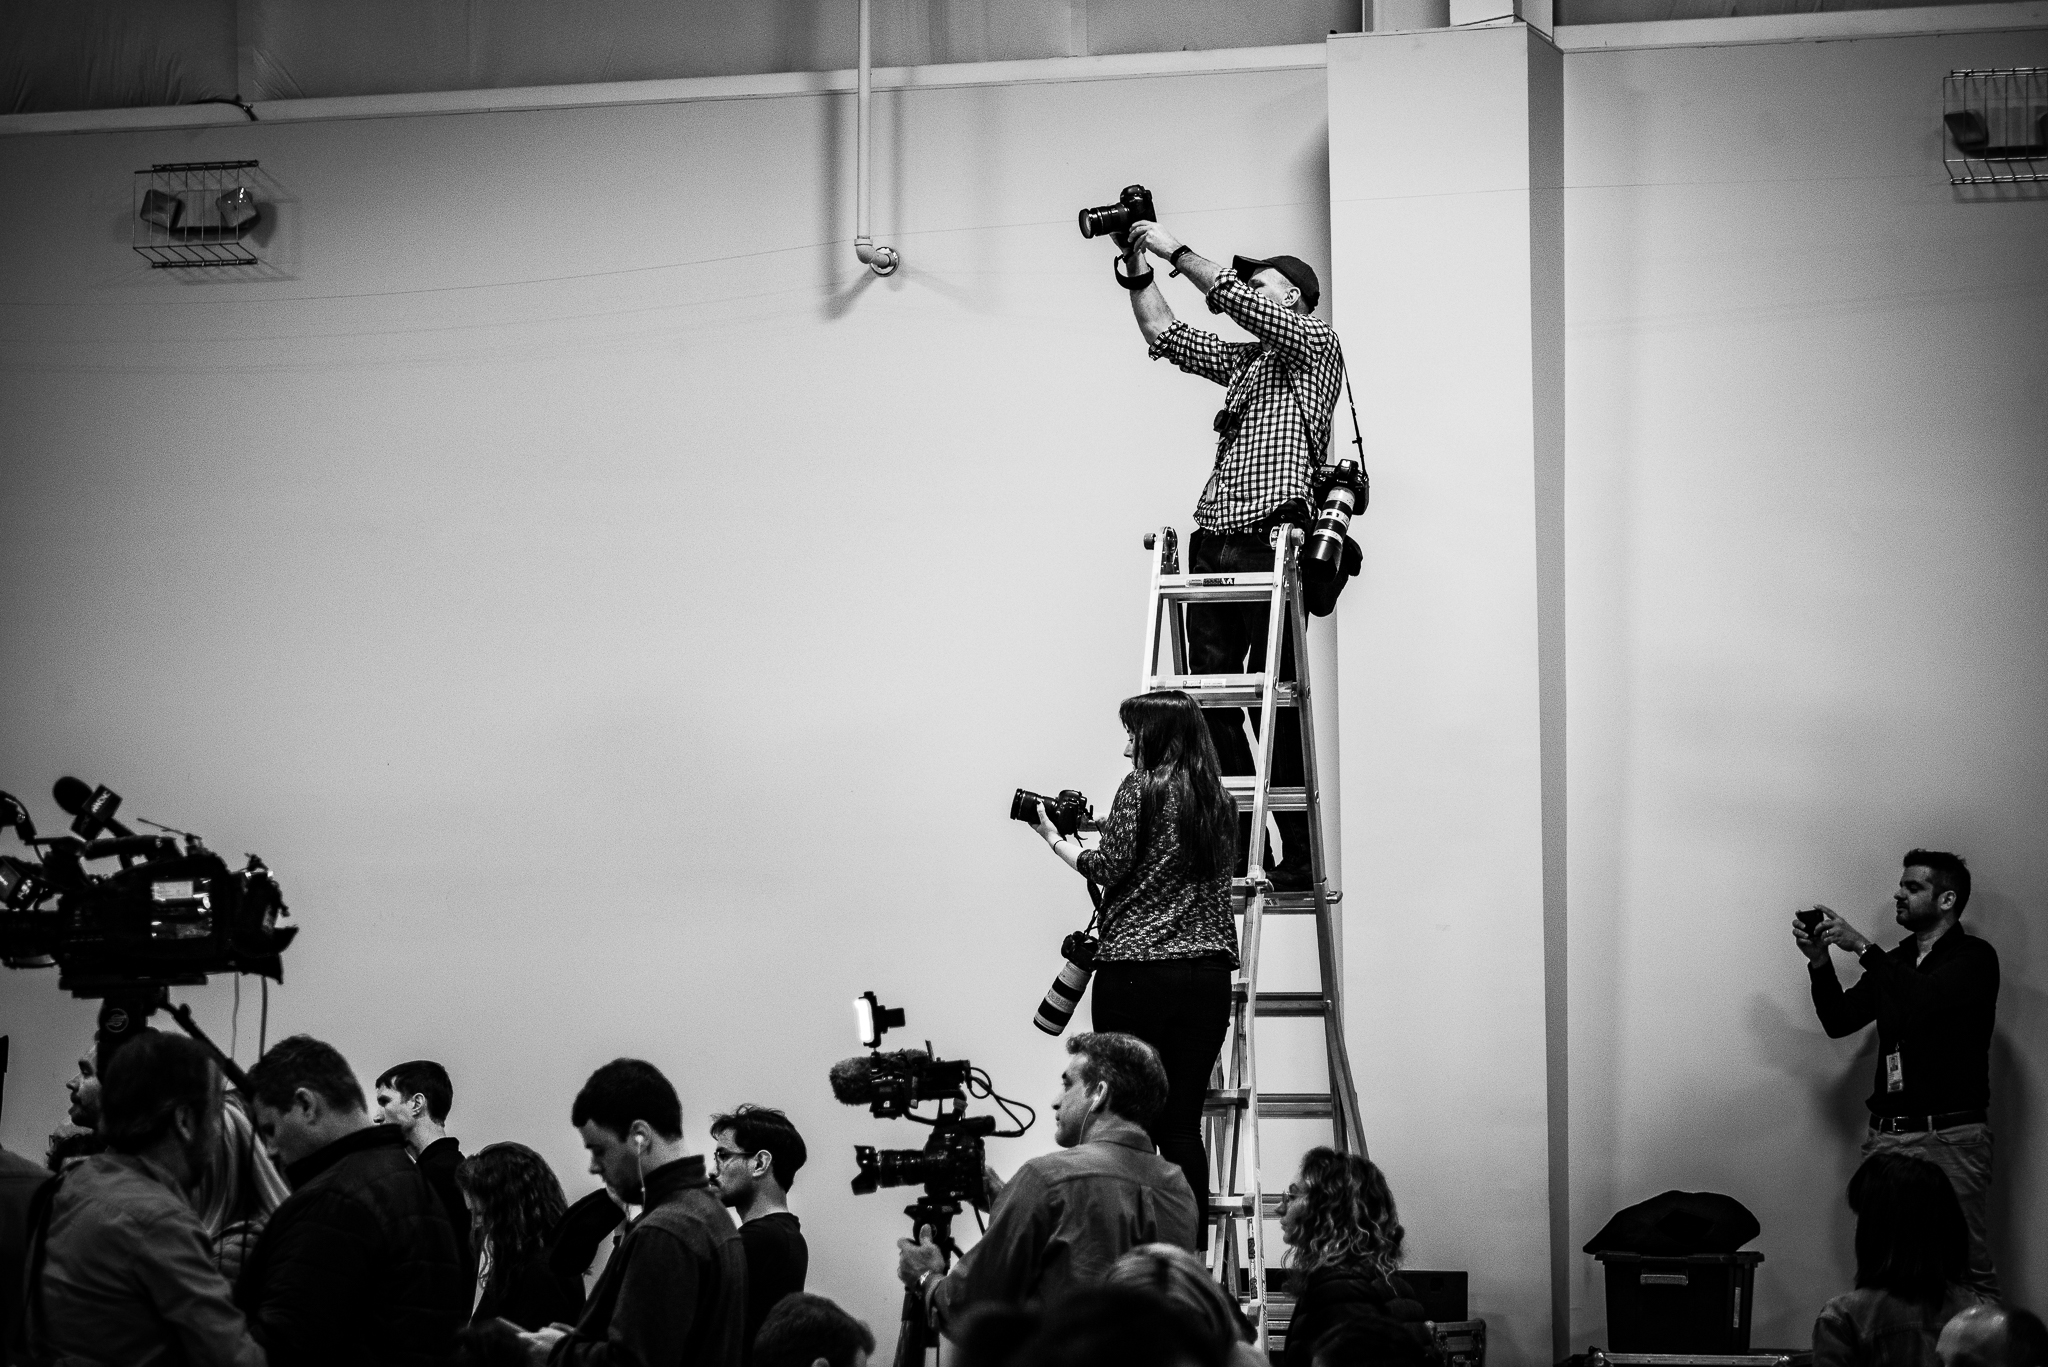 National and local photographers climb a ladder at a Joe Biden rally to get a better shot of the candidate Sumter, South Carolina. Photo: Lance Monotone